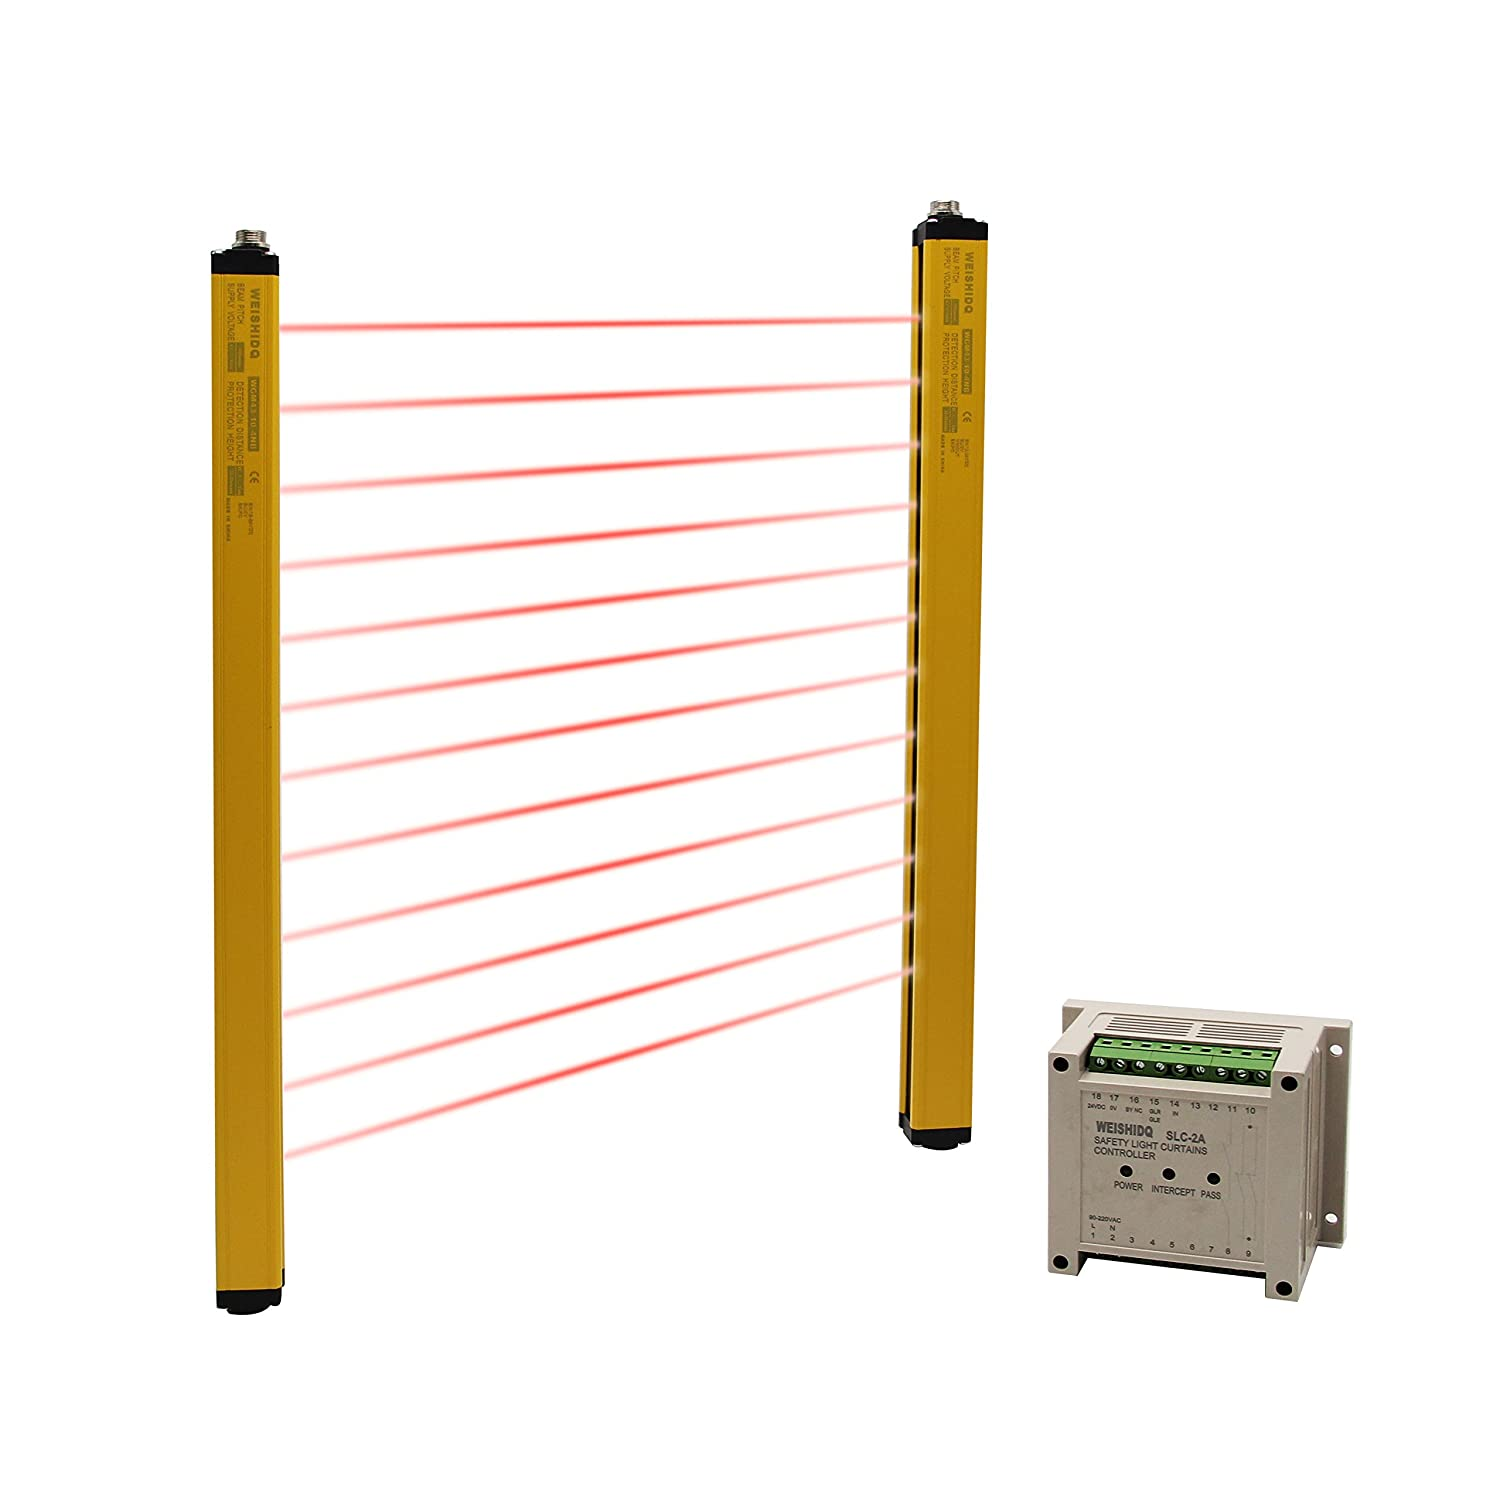 CGOLDENWALL Safety Light Curtains light screen sensor safety grating punching machine protector &Sensing height:920mm (Customizable)